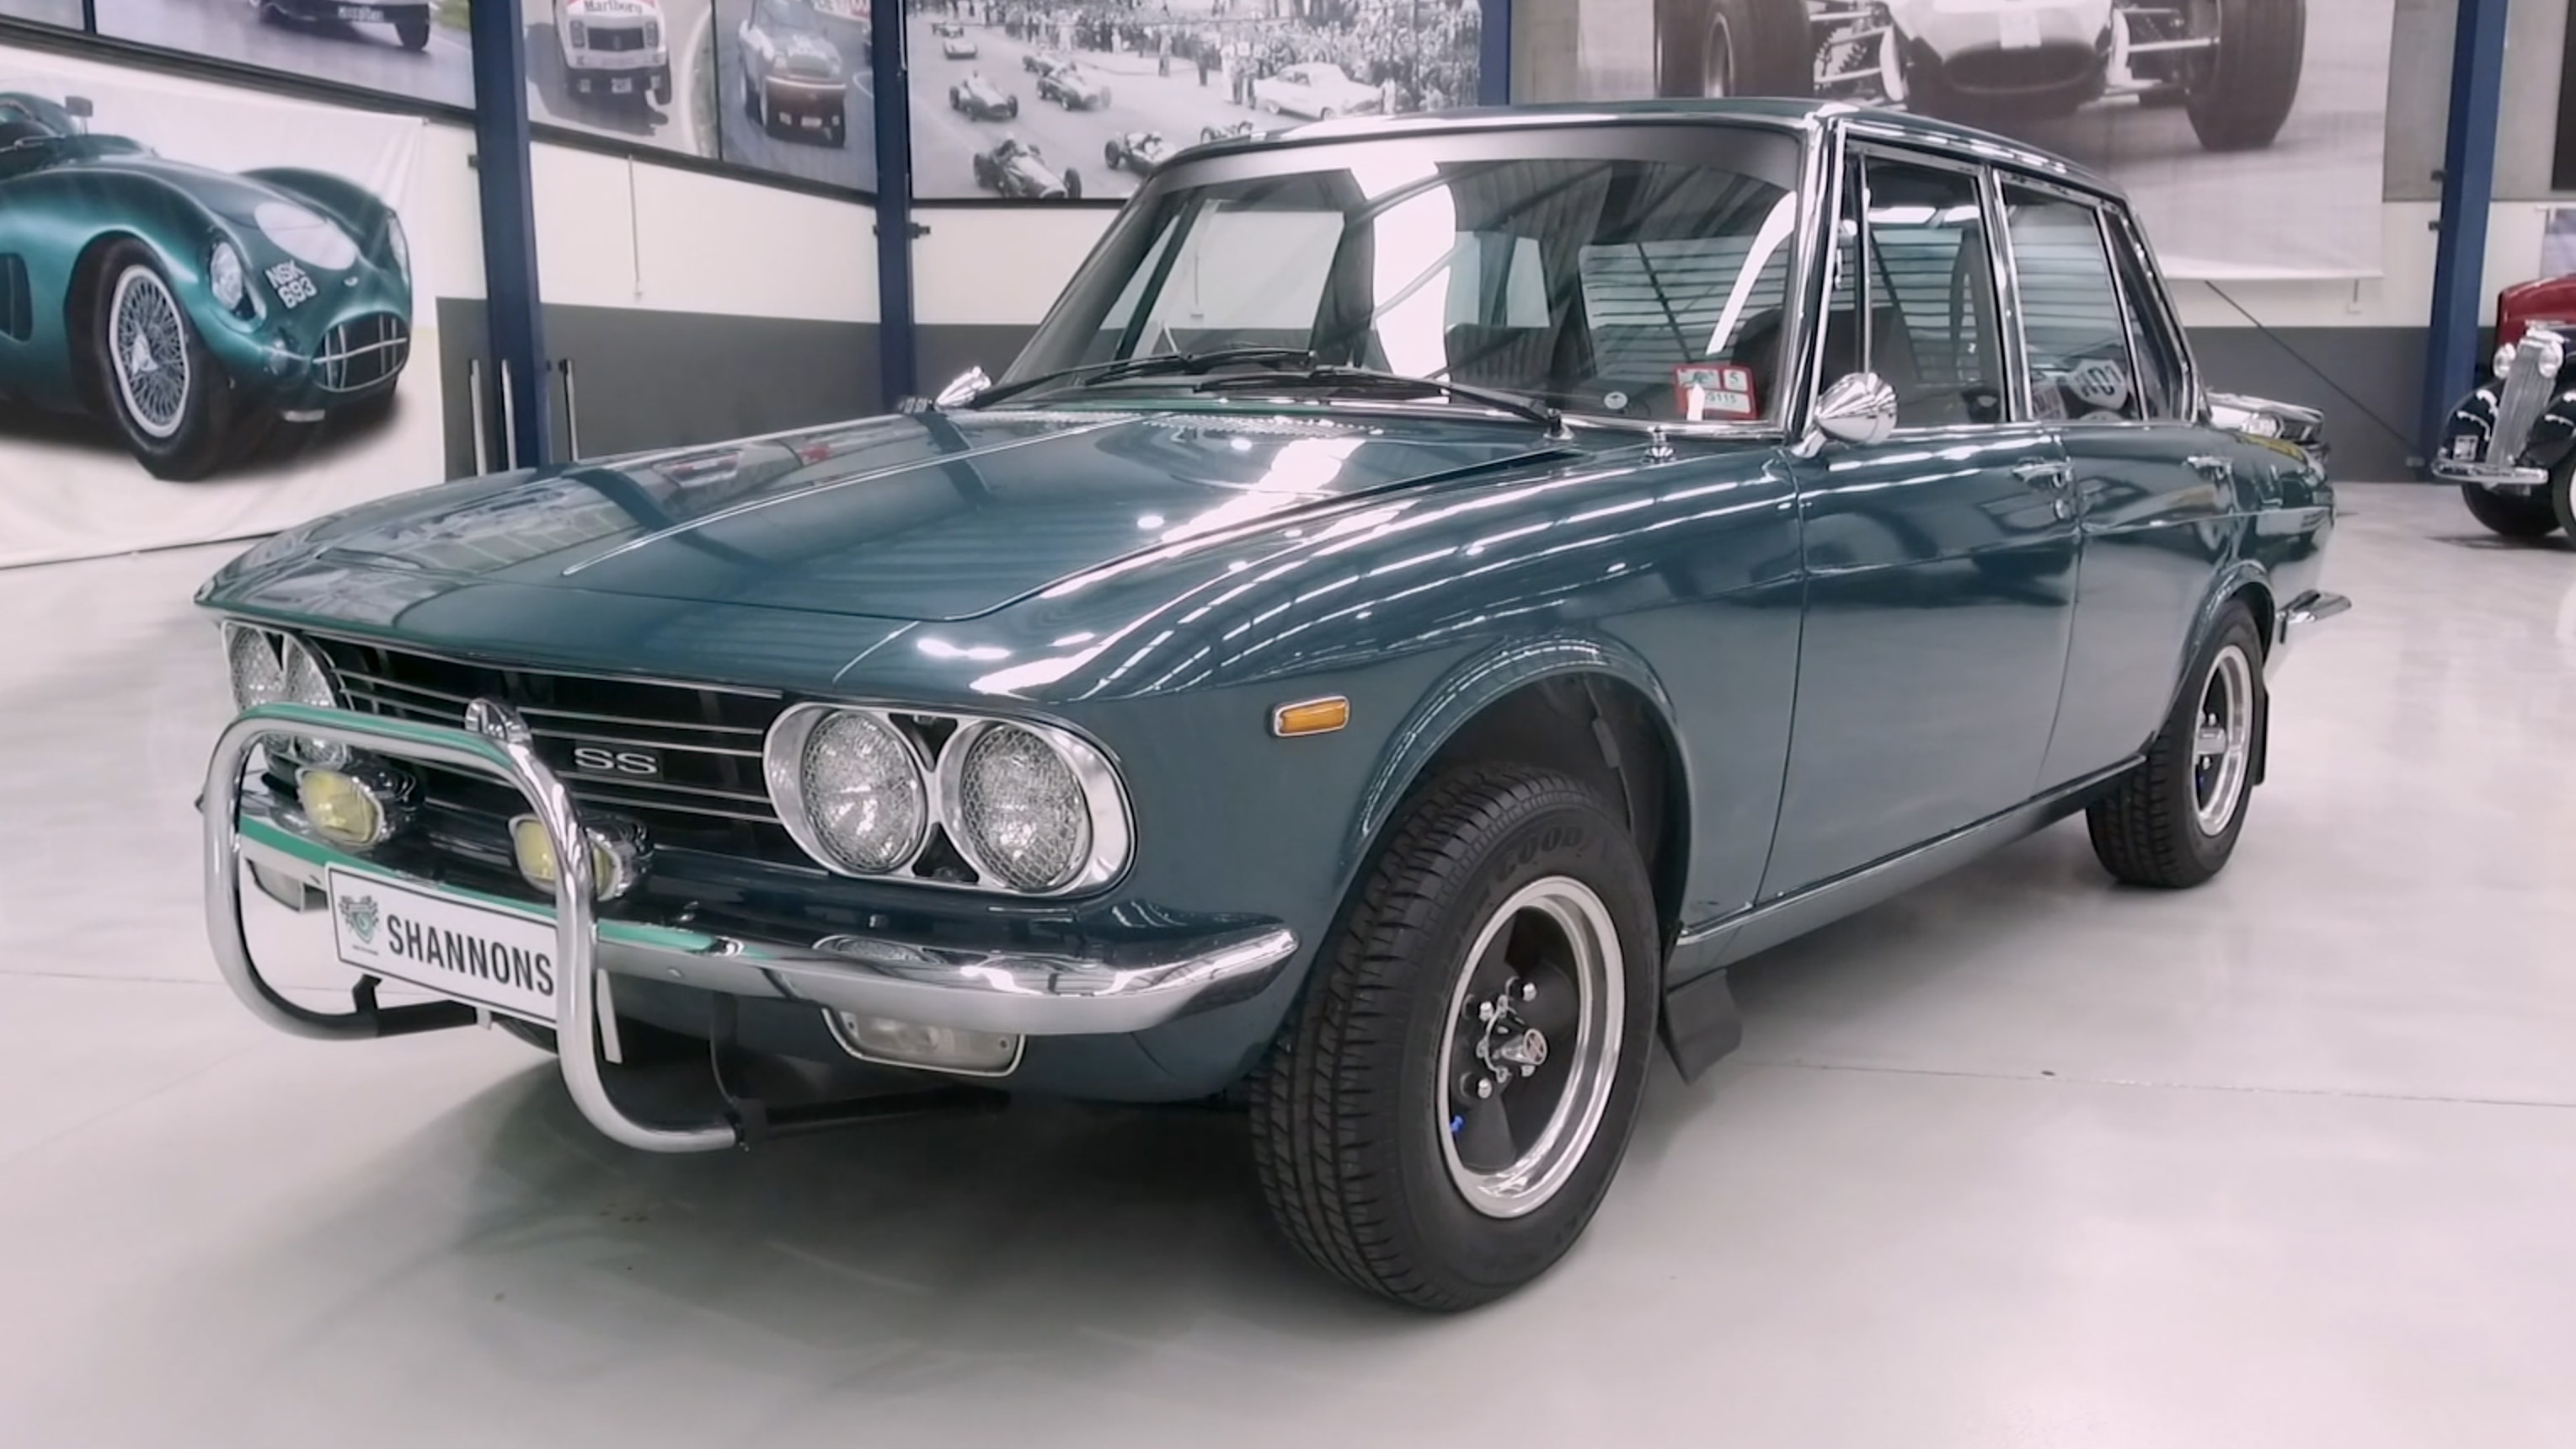 1969 Mazda 1500 SS 'Manual' Sedan - 2021 Shannons Summer Timed Online Auction